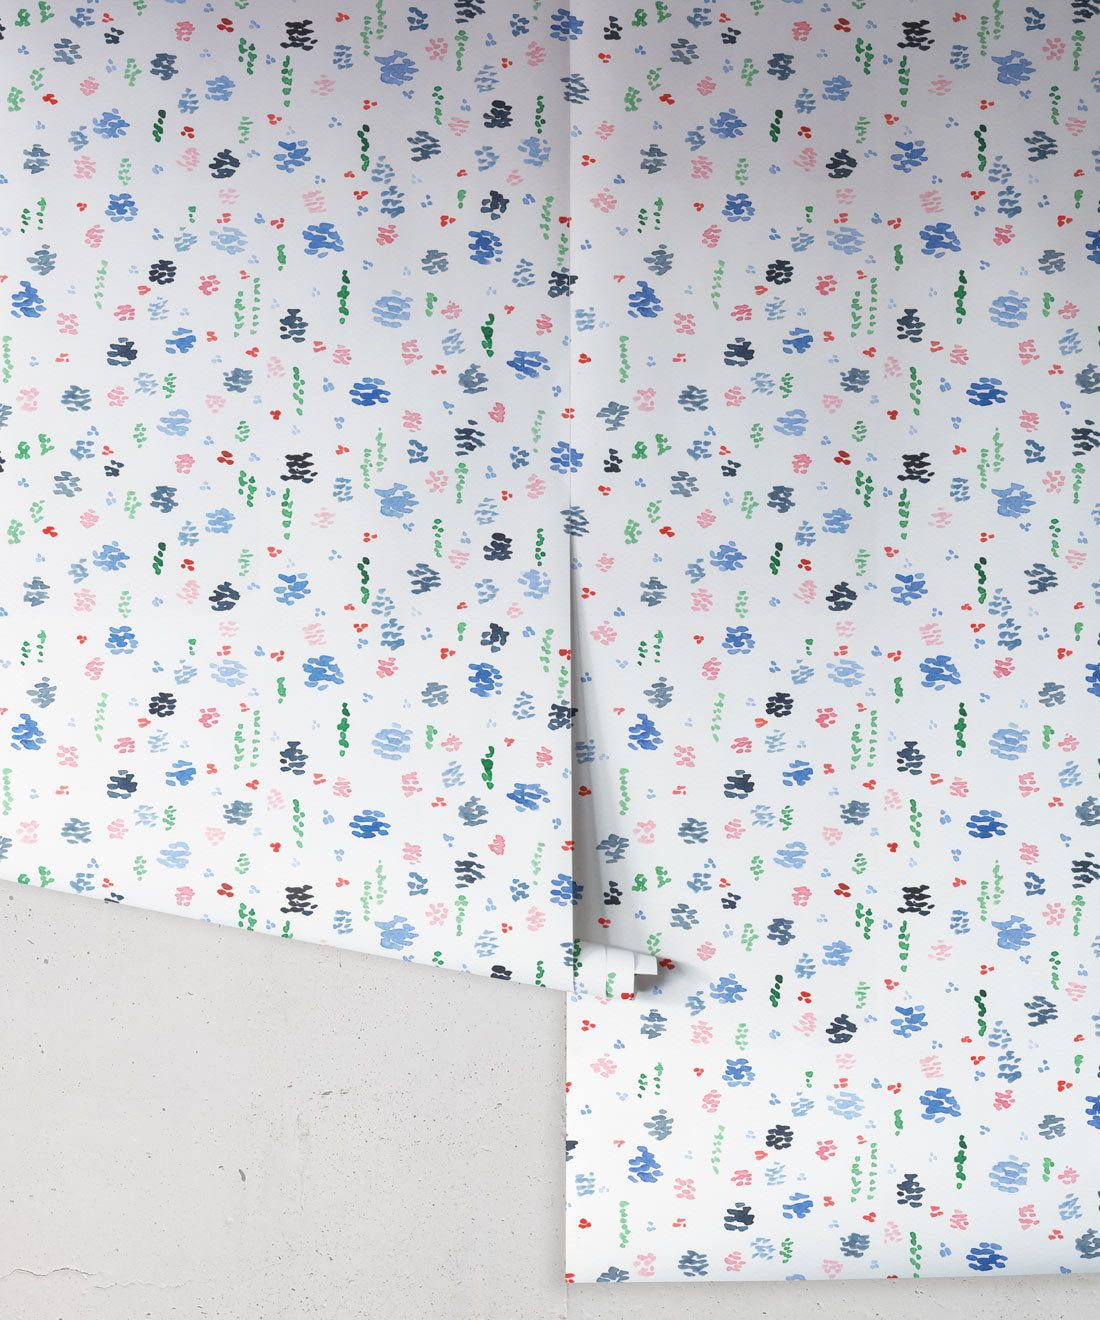 Spring Garden • Abstract Inky Floral Wallpaper • Georgia MacMillan • Kids Wallpaper • Nursery Wallpaper • Milton & King USA